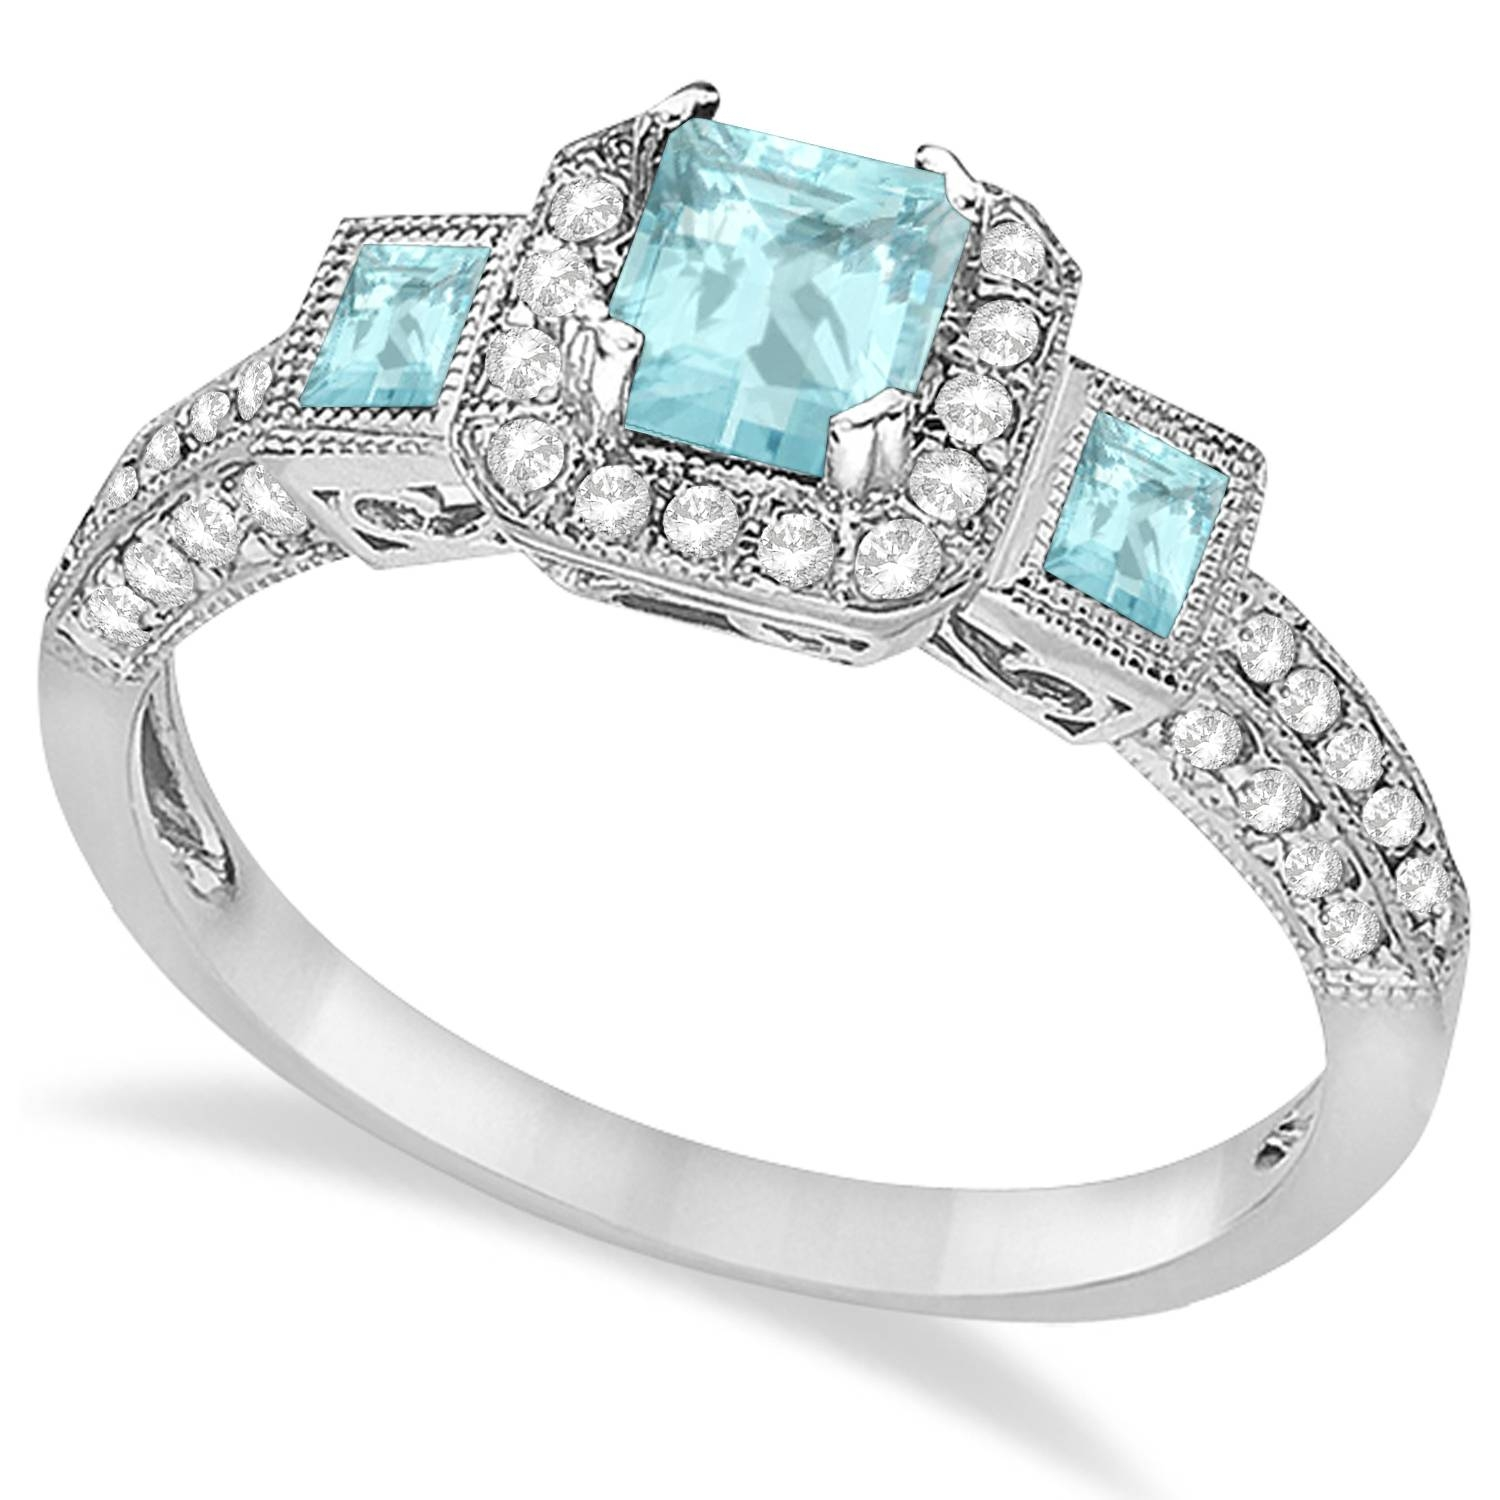 Aquamarine & Diamond Engagement Ring 14K White Gold 1.35Ct – Allurez Pertaining To Diamond Aquamarine Engagement Rings (Gallery 2 of 15)